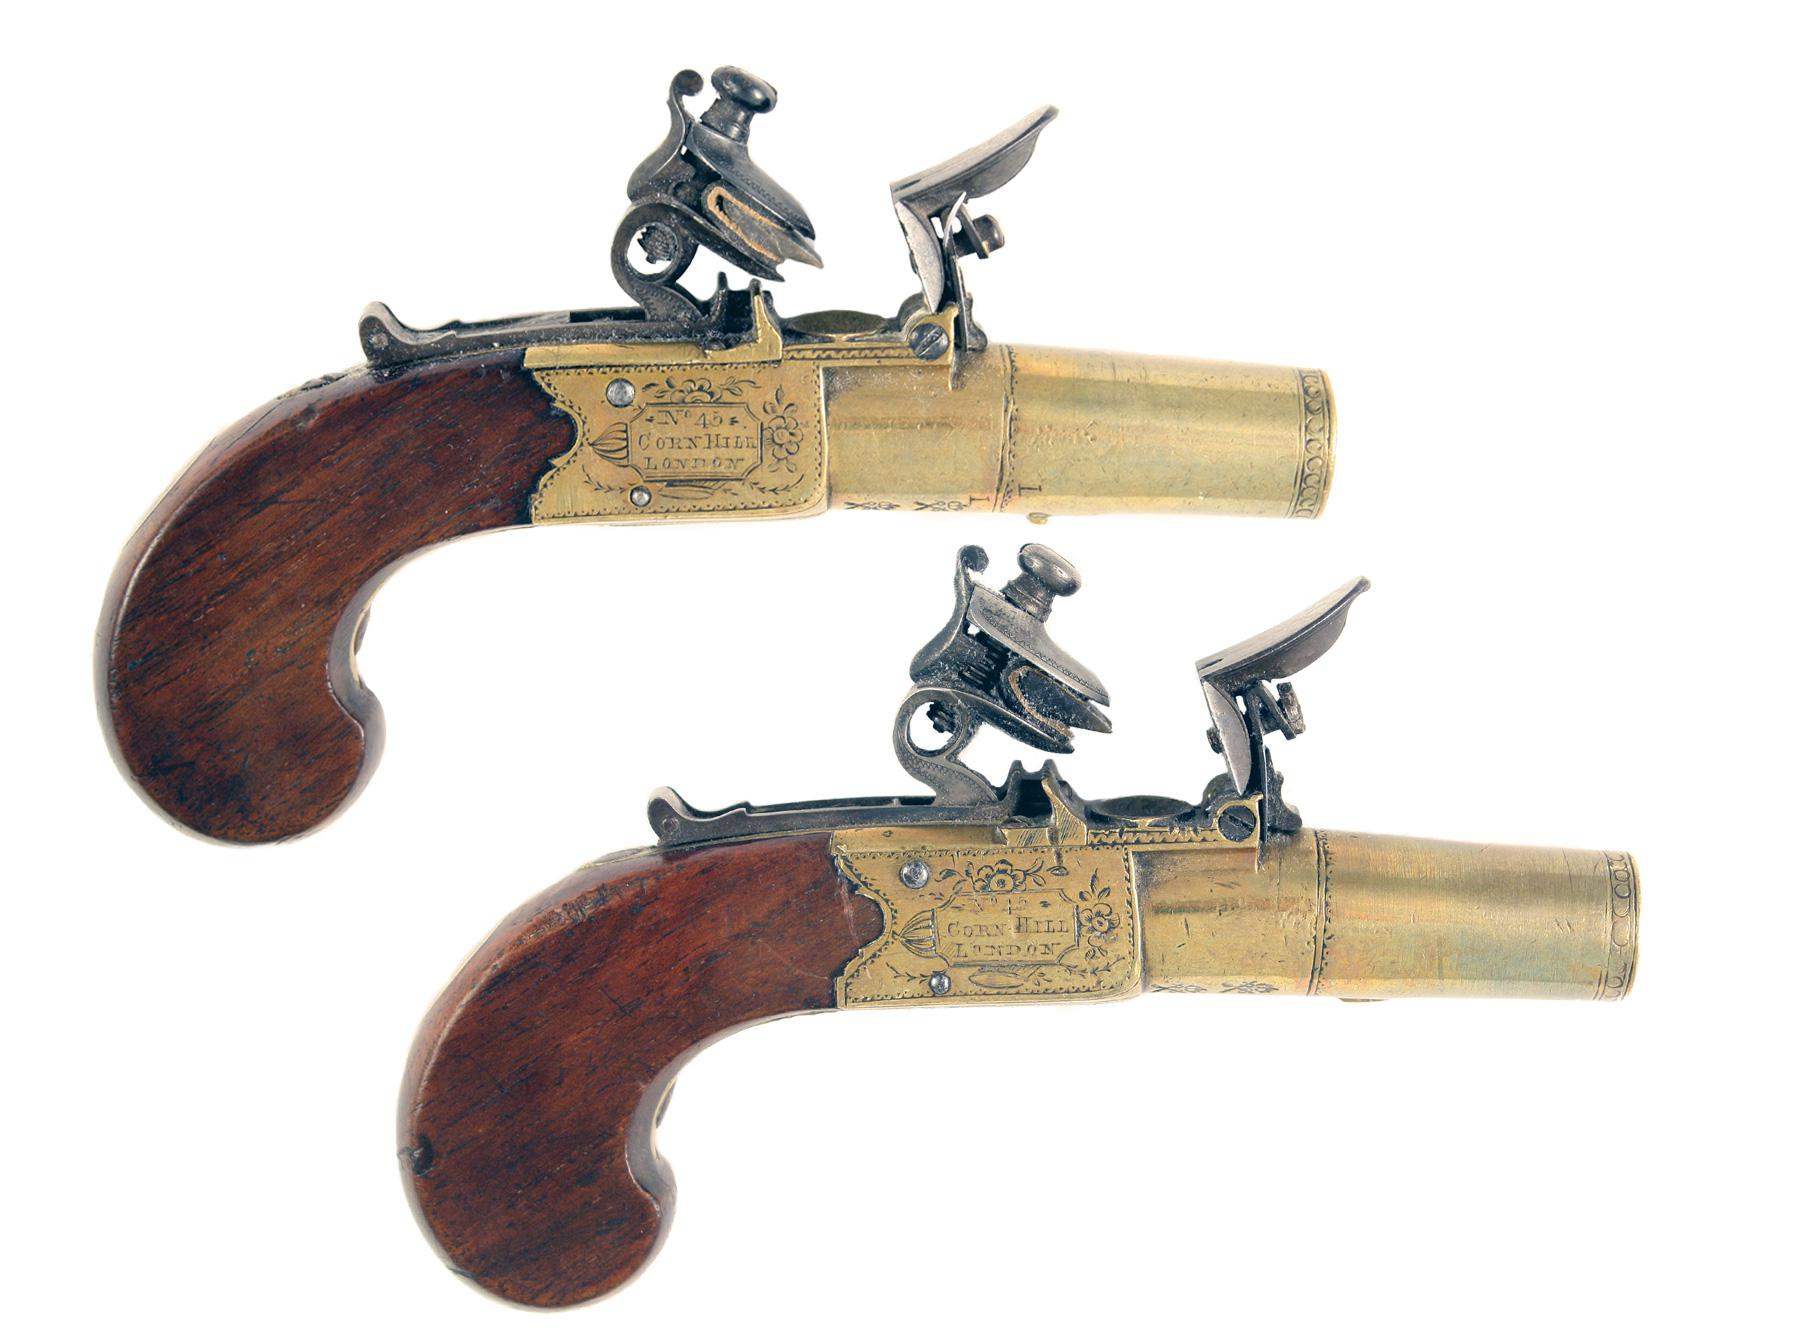 A Pair of Pocket Pistols by Nicholson